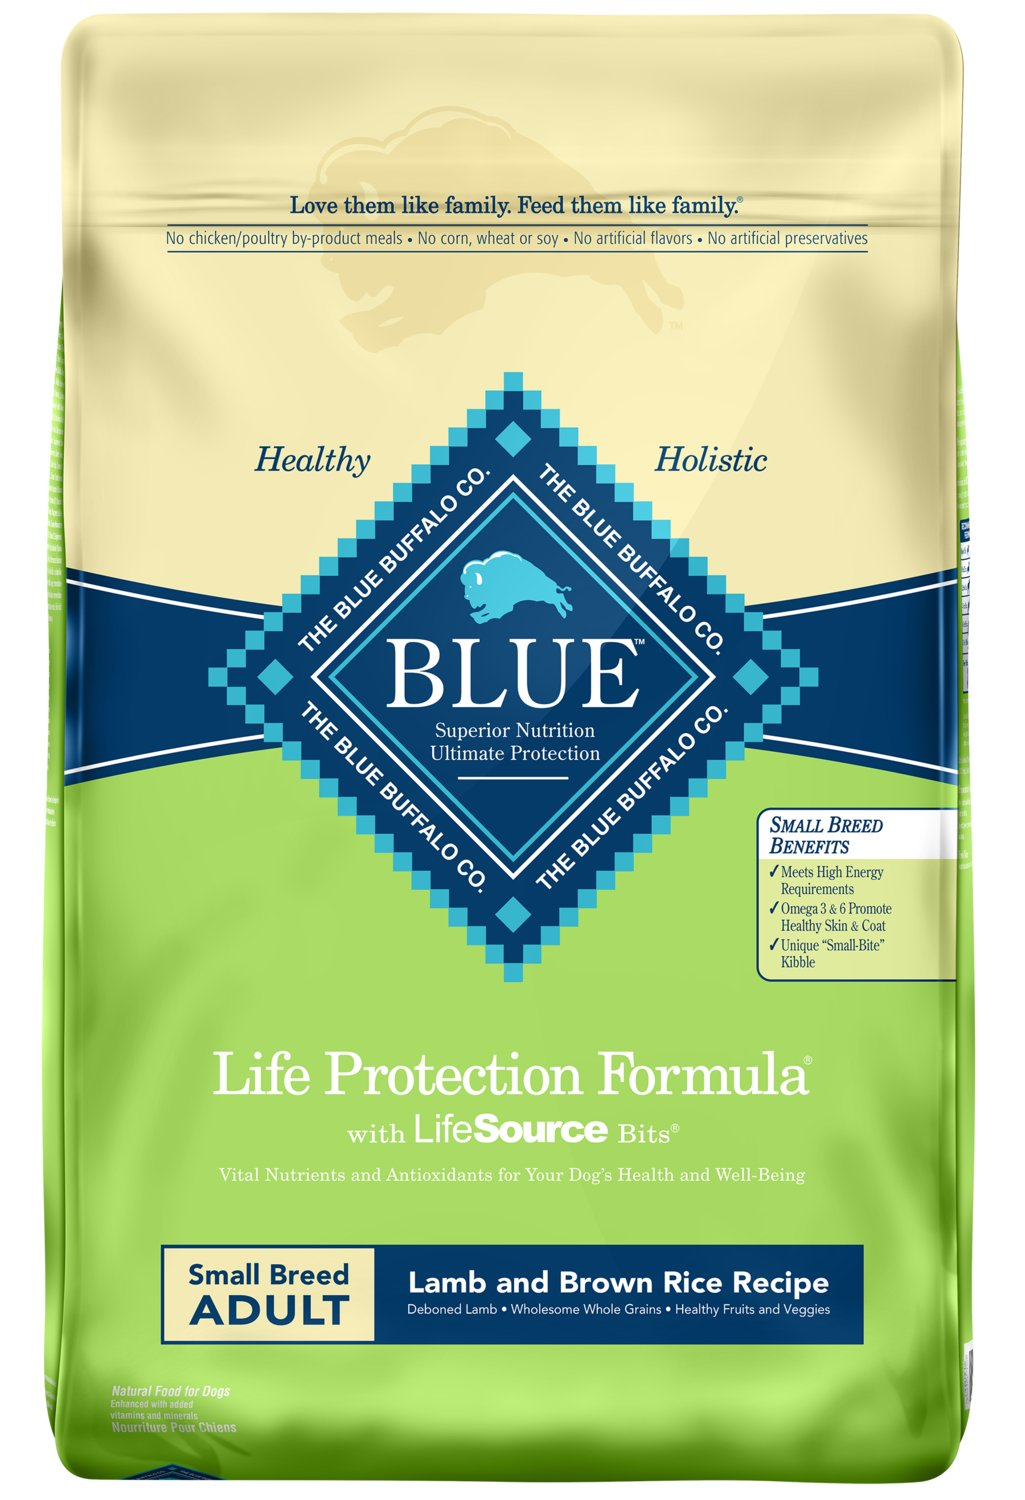 bluee Life Predection Formula Adult Small Breed Lamb and Brown Rice Dry Dog Food 15-lb